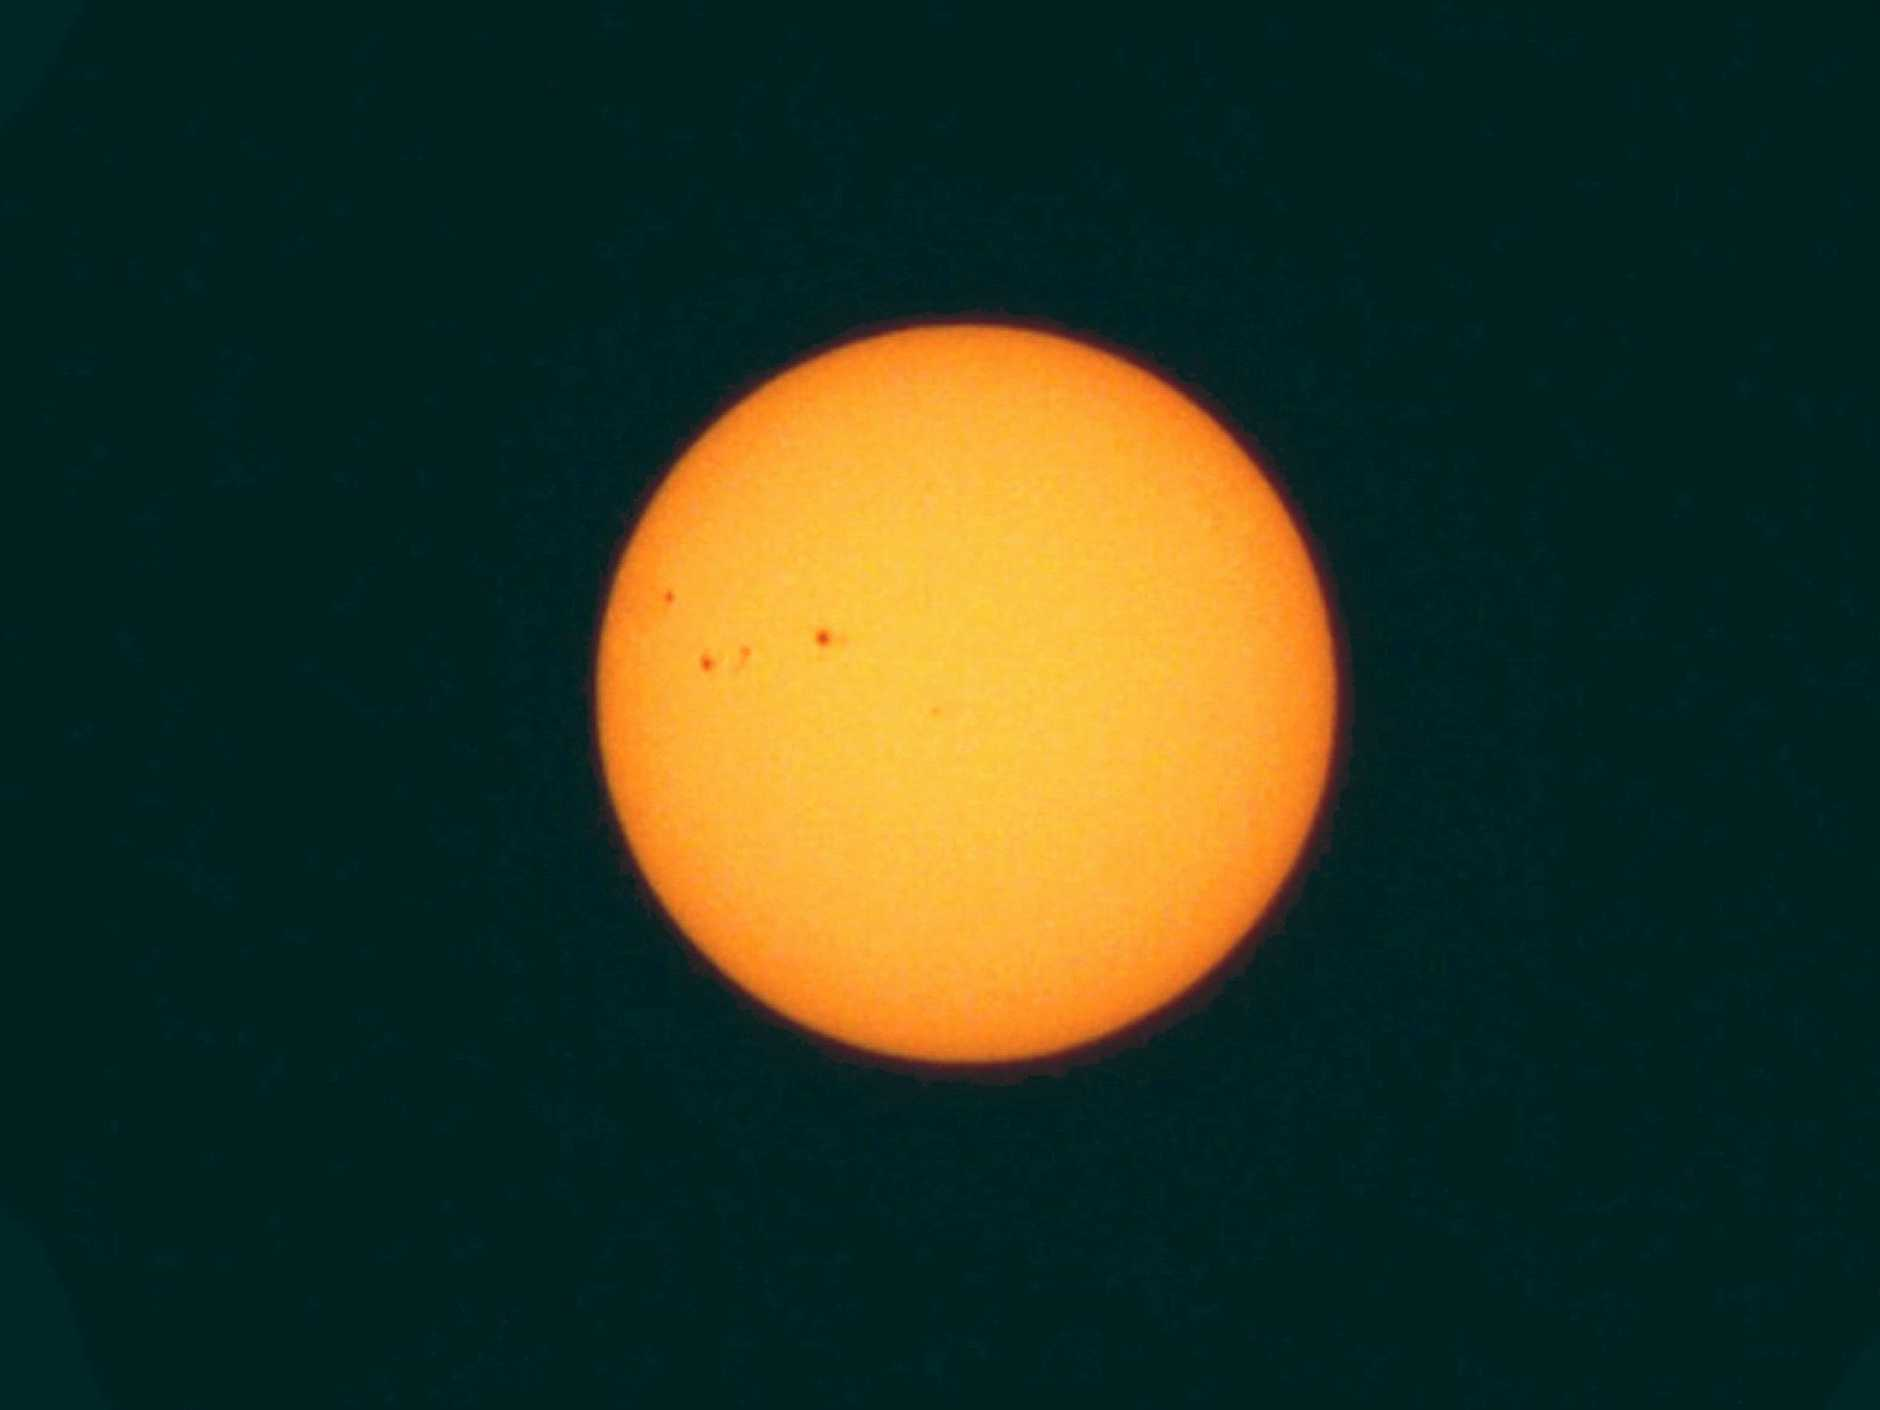 Image of the Sun showing sunspots.